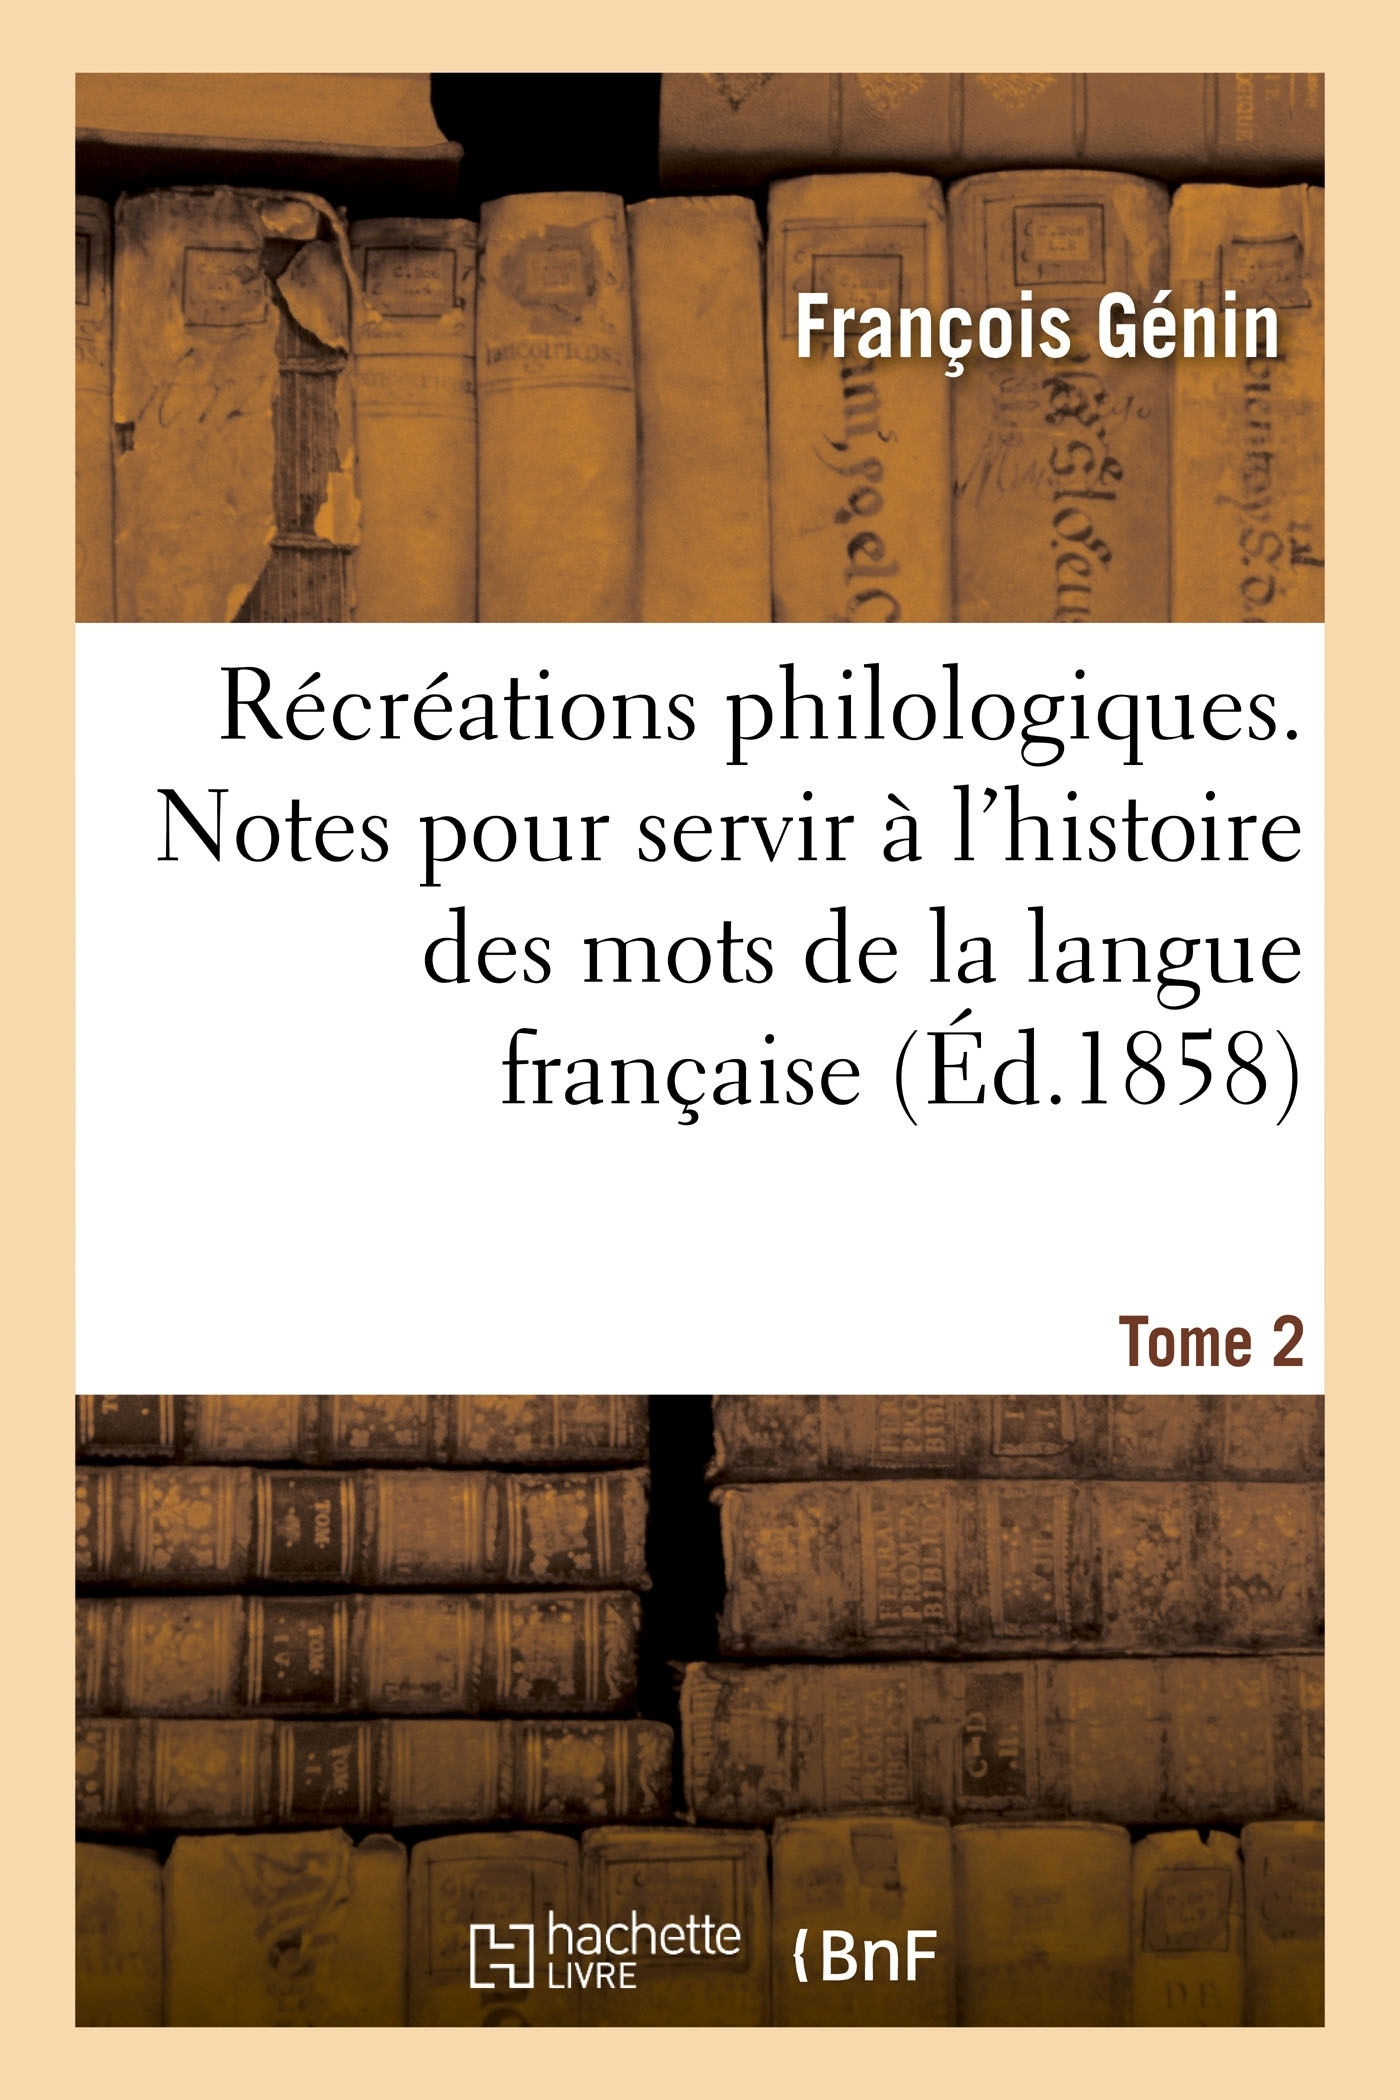 RECREATIONS PHILOLOGIQUES. TOME 2